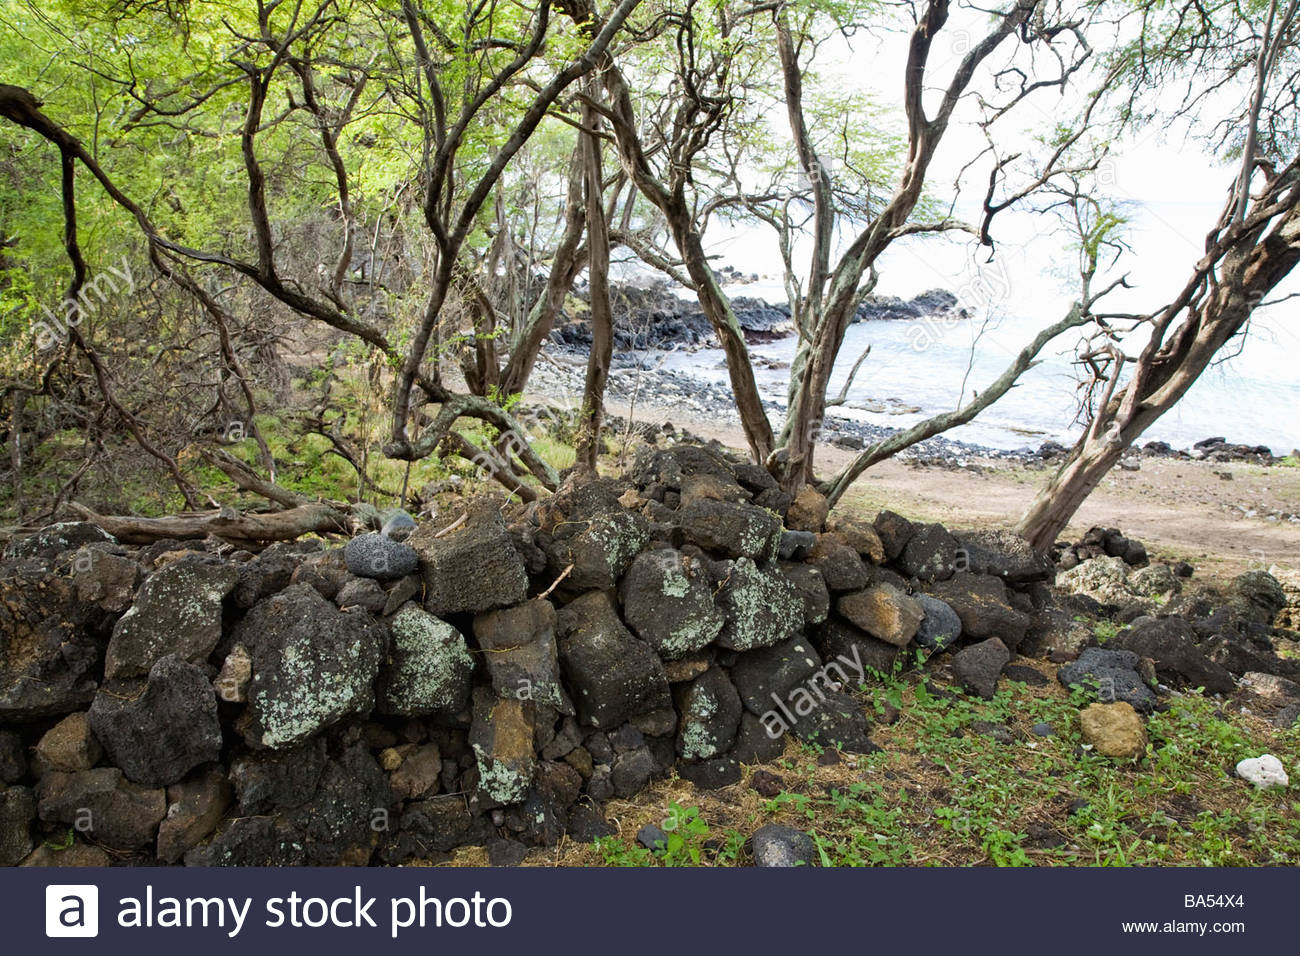 Overgrown ancient Hawaiian cultural site at La Perouse Bay on the island of Maui in the state of Hawaii USA - Stock Image